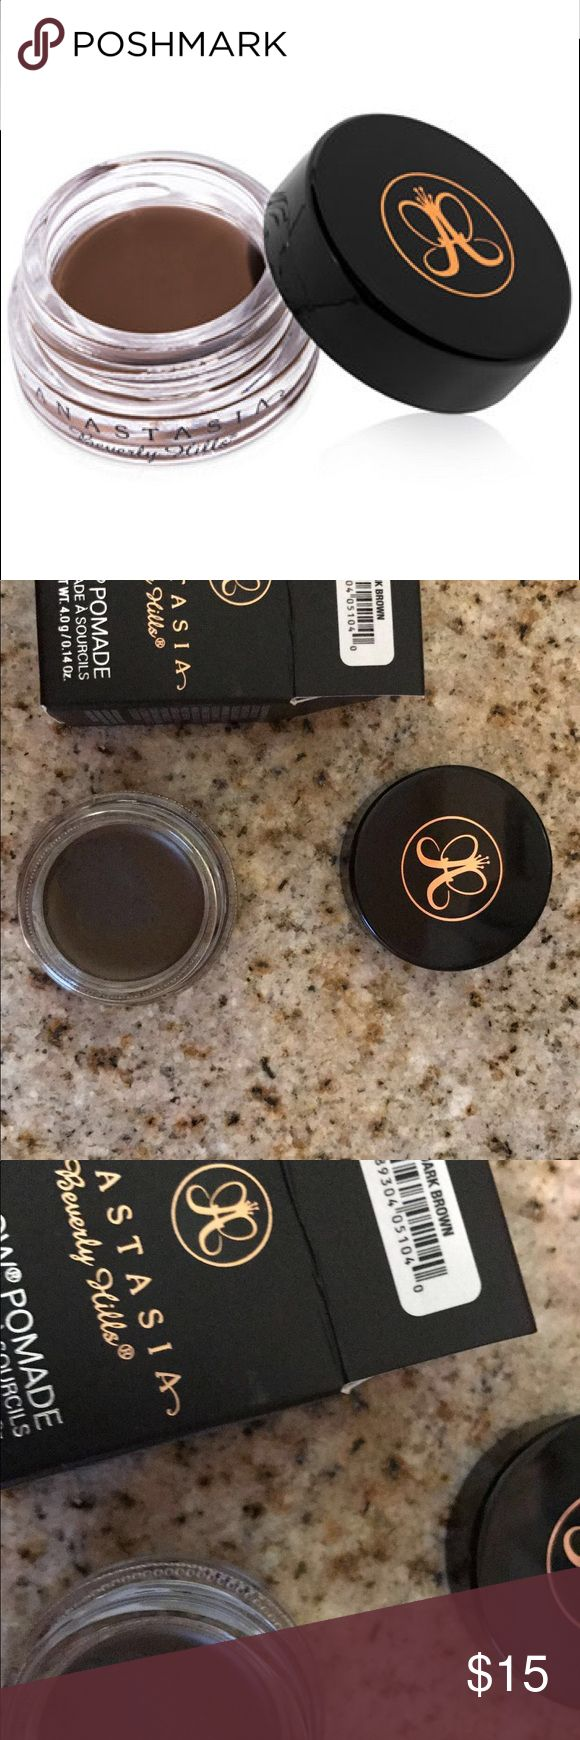 Anastasia Dip Brow Pomade Dark Brown Used only ONCE!! It was not my color and comes in box Anastasia Beverly Hills Makeup Eyebrow Filler